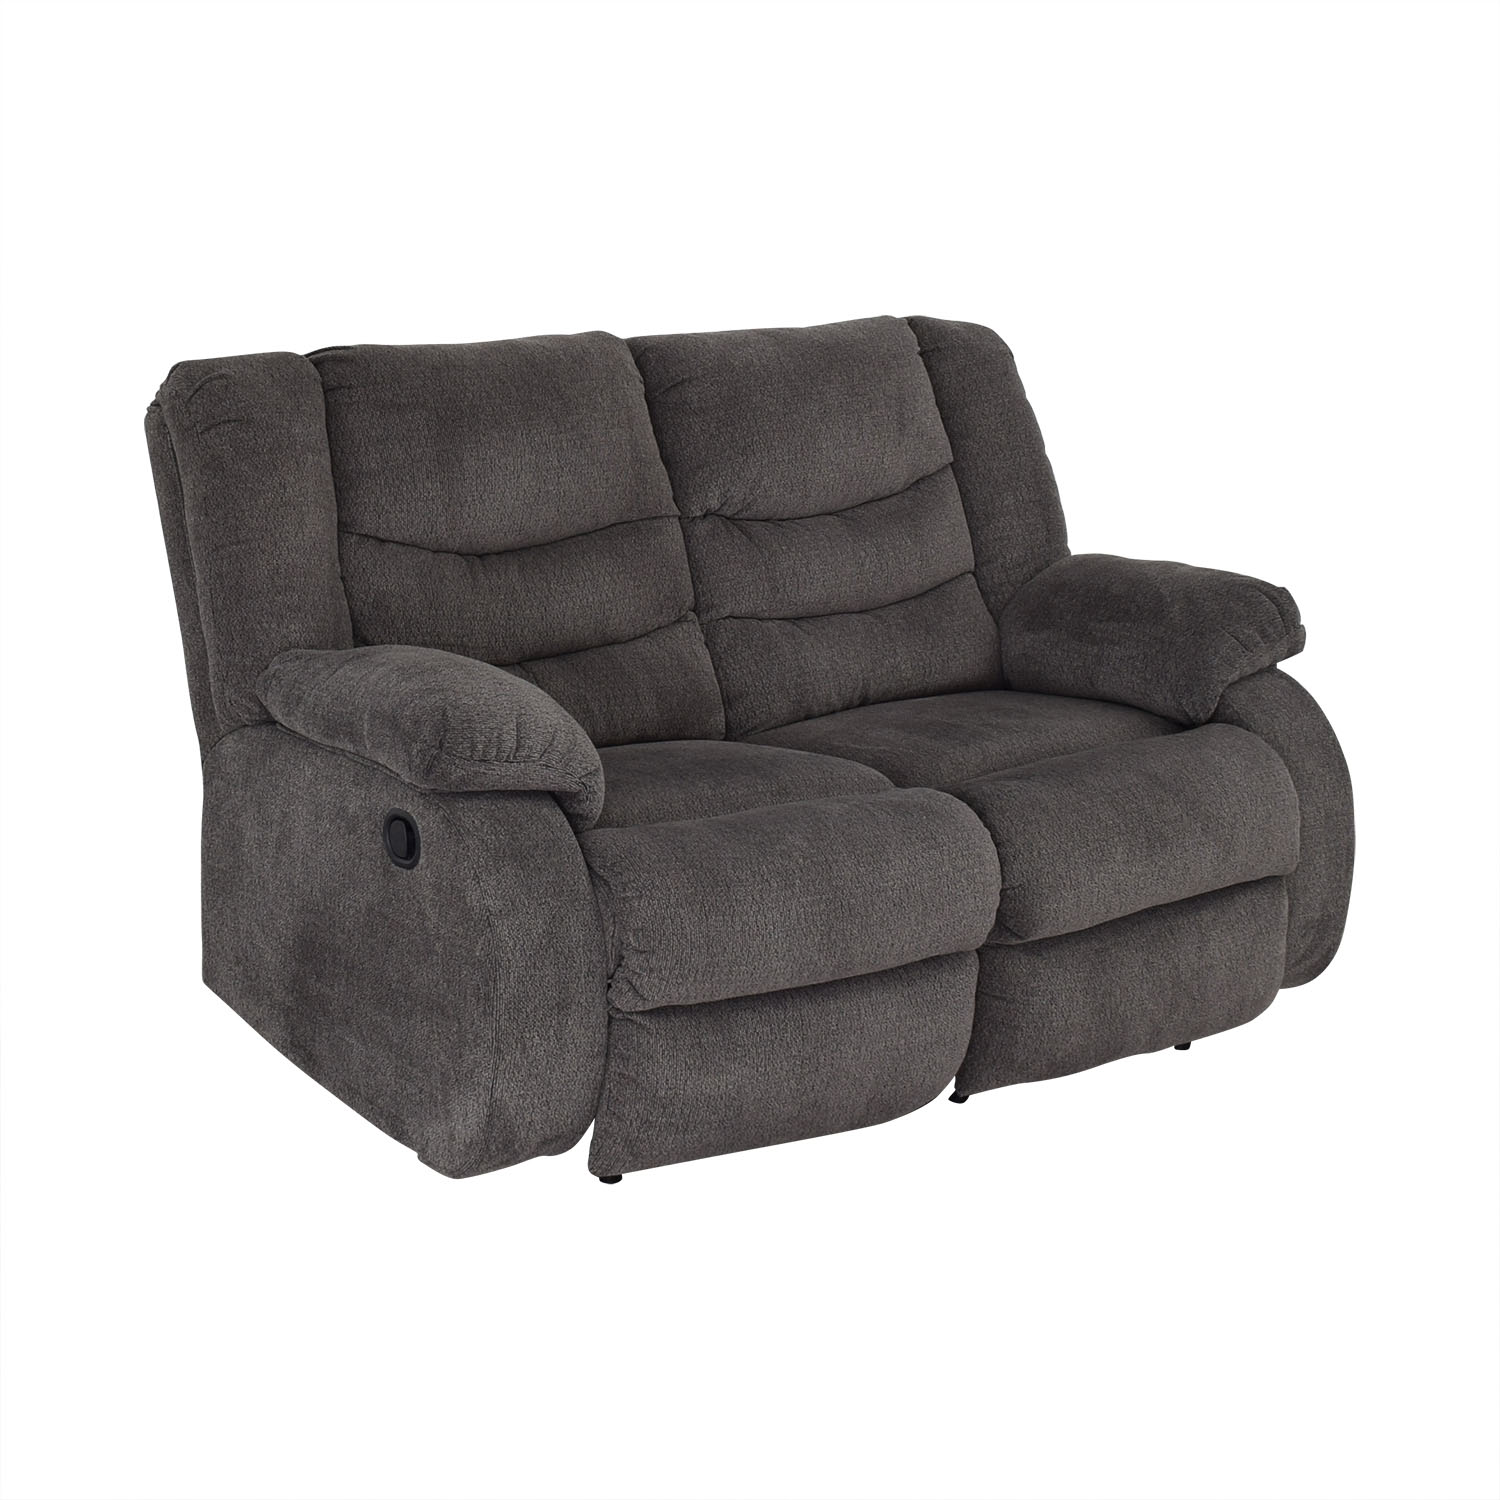 Ashley Furniture Ashley Furniture Gray Reclining Loveseat nyc